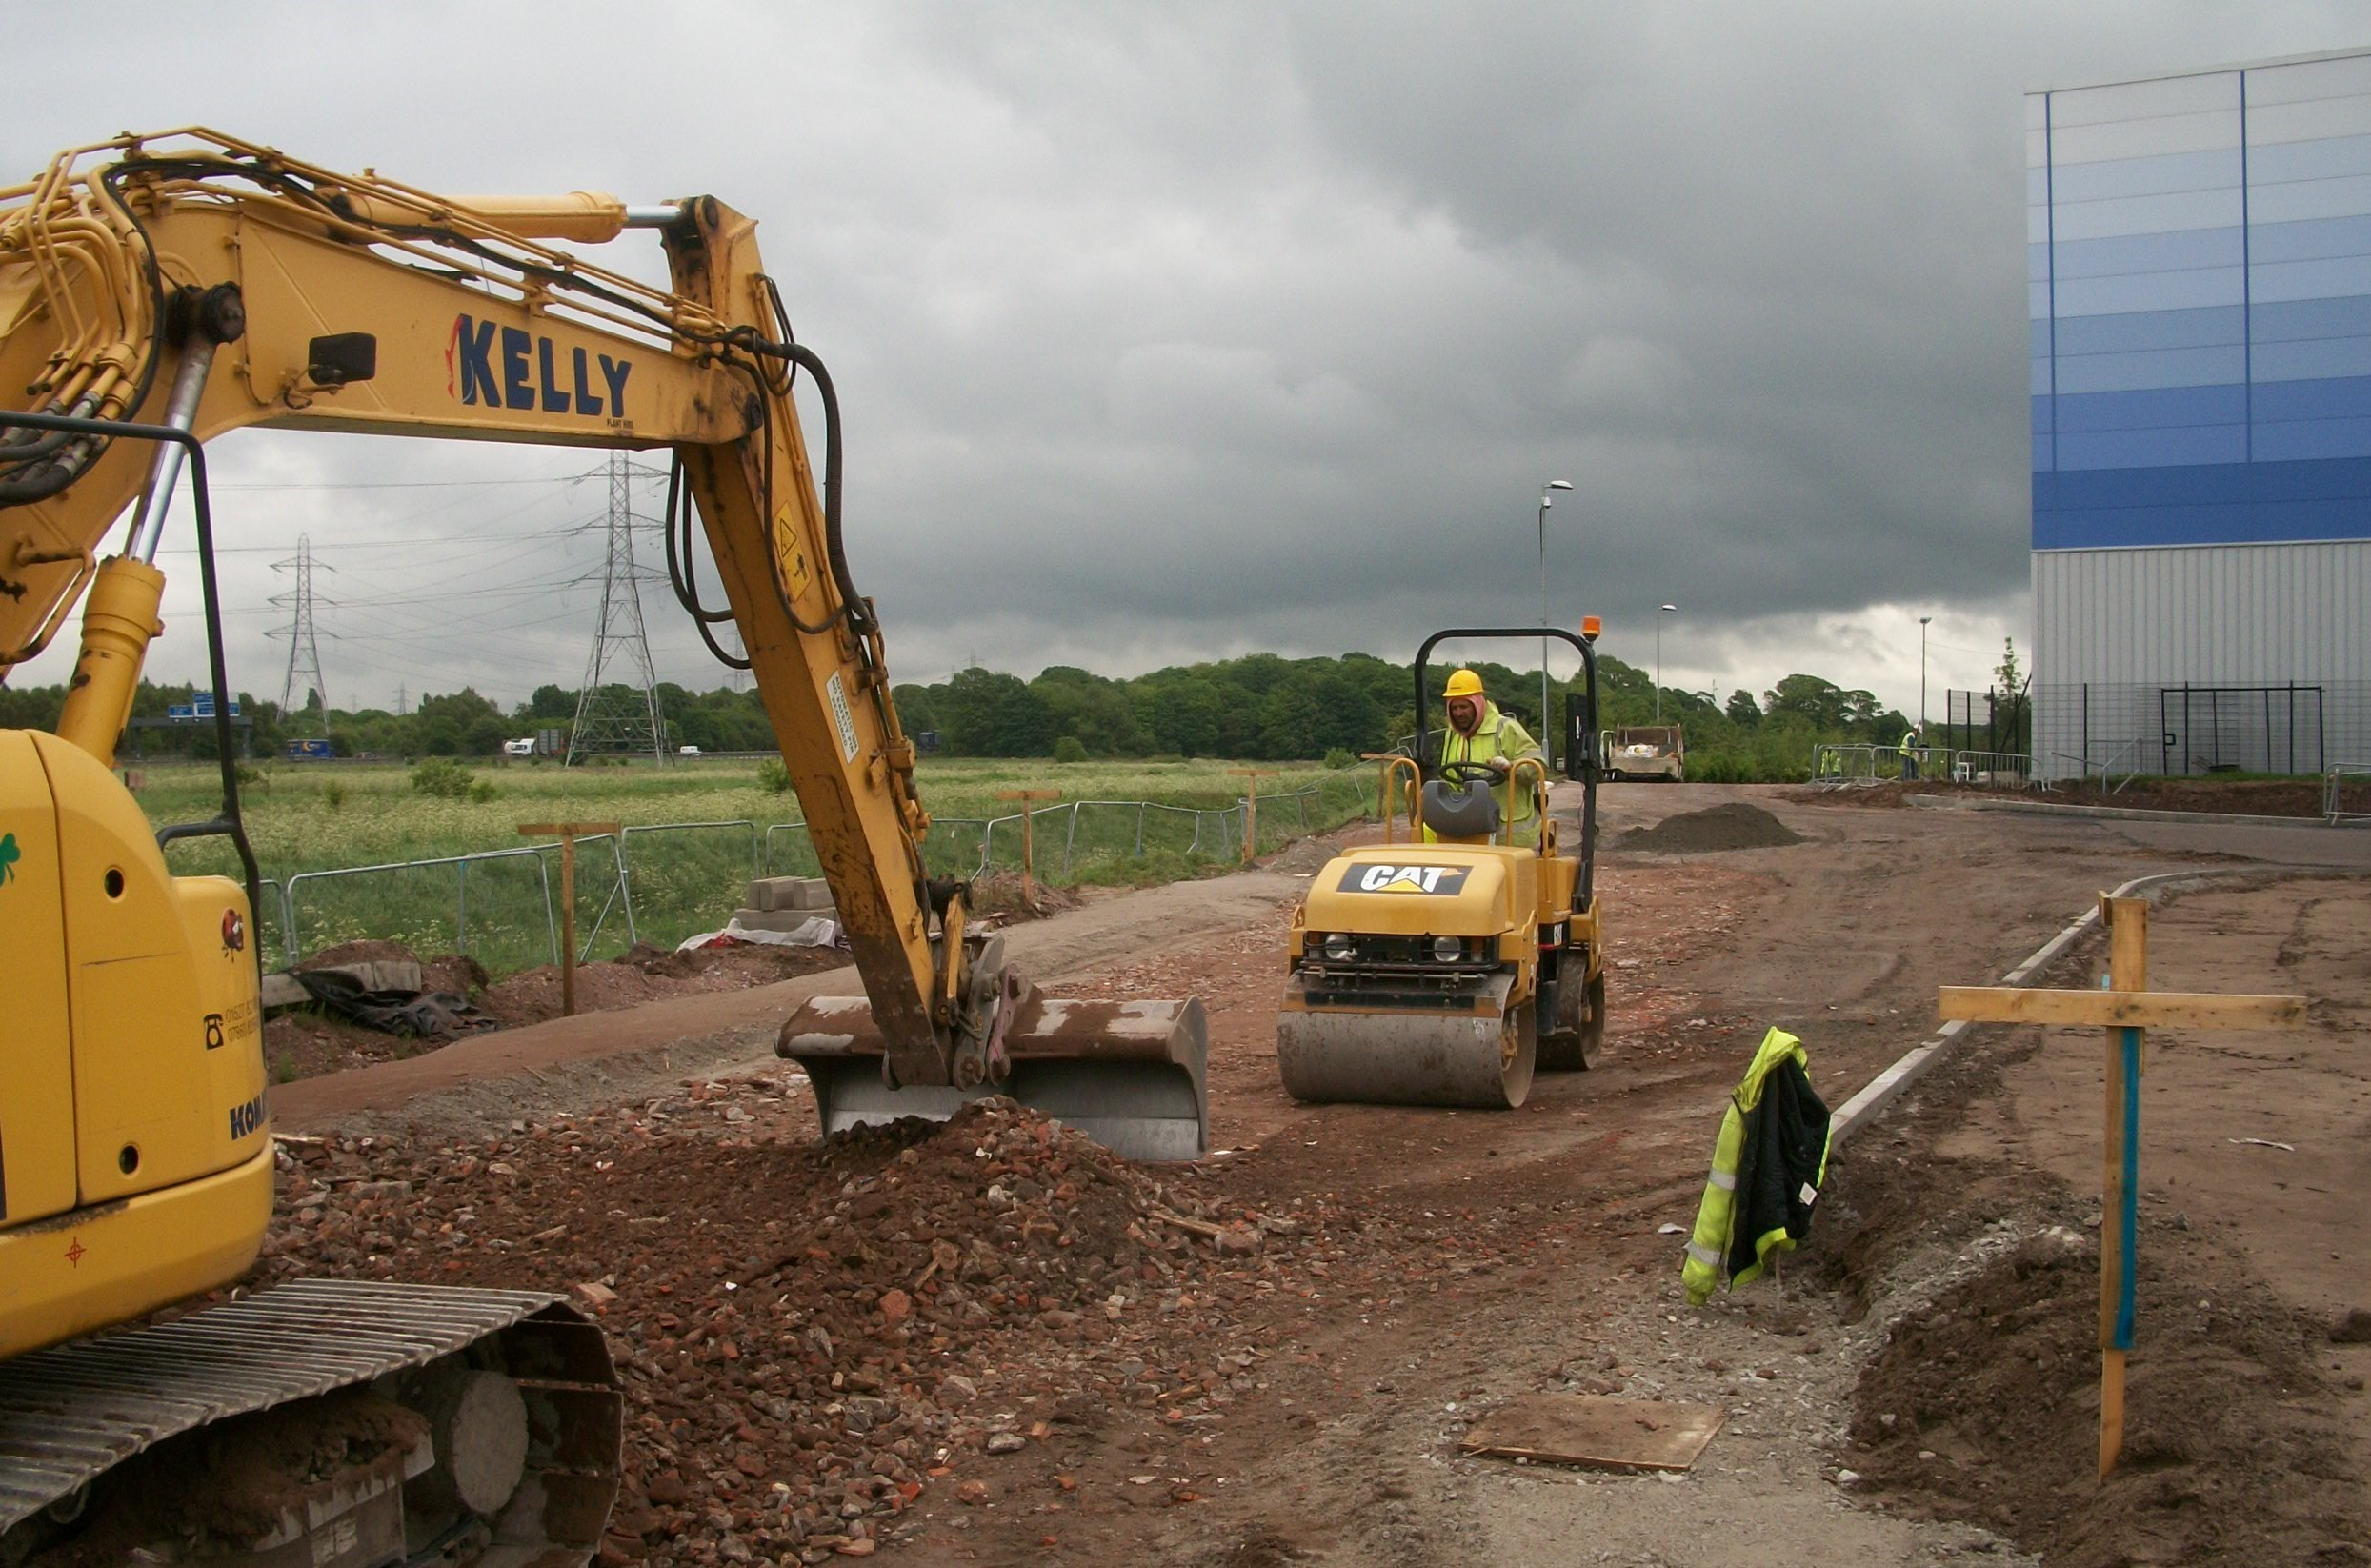 Kelly Plant Hire Equipment At Work